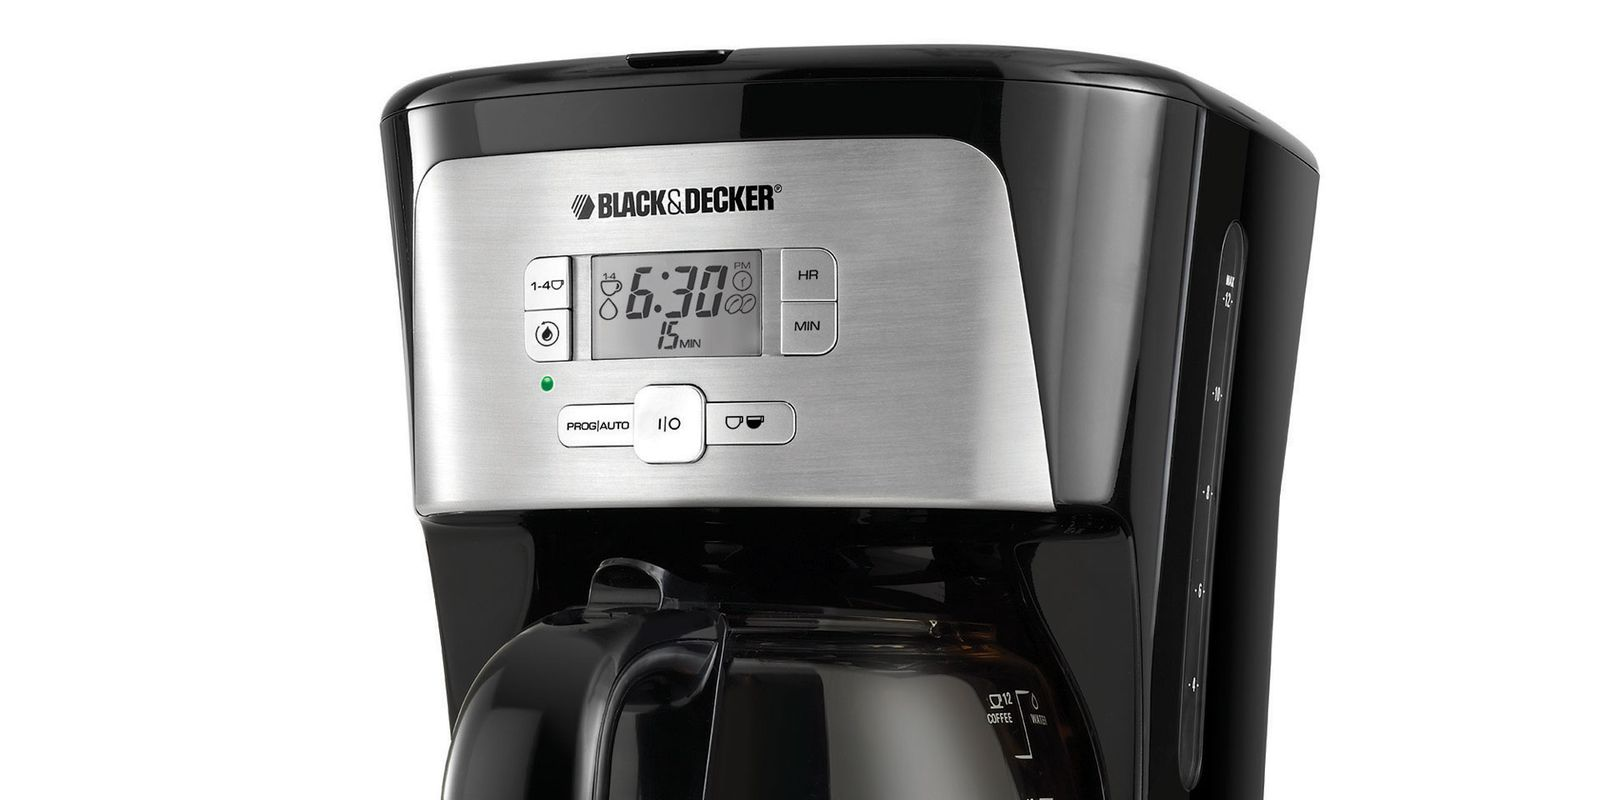 Black And Decker Coffee Maker Cm1300sc : Black & Decker 12-Cup Programmable Coffee Maker #CM2020B Review